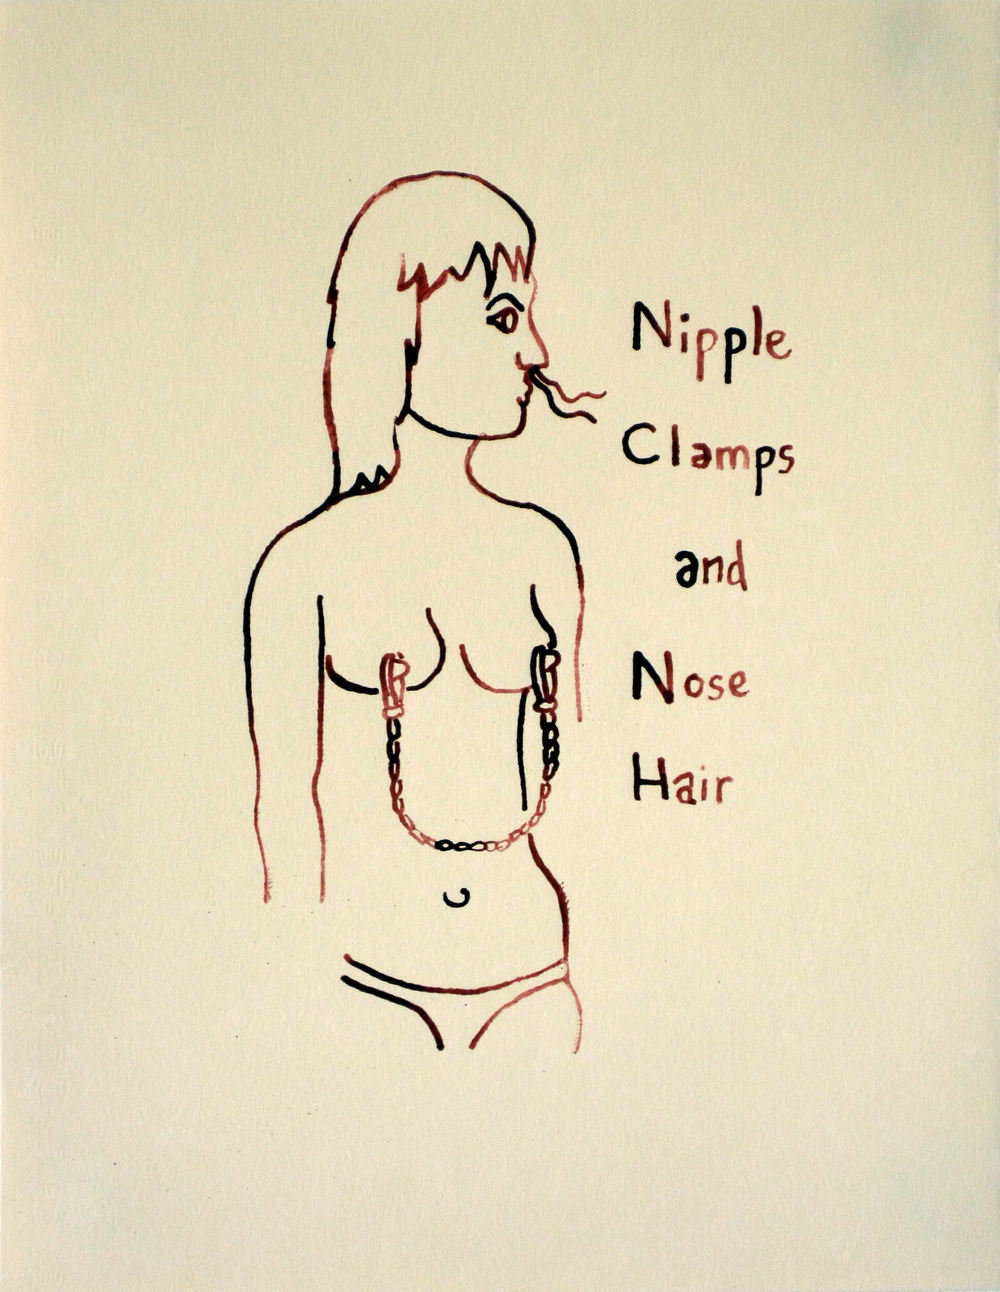 Nipple Clamps and Nose Hair